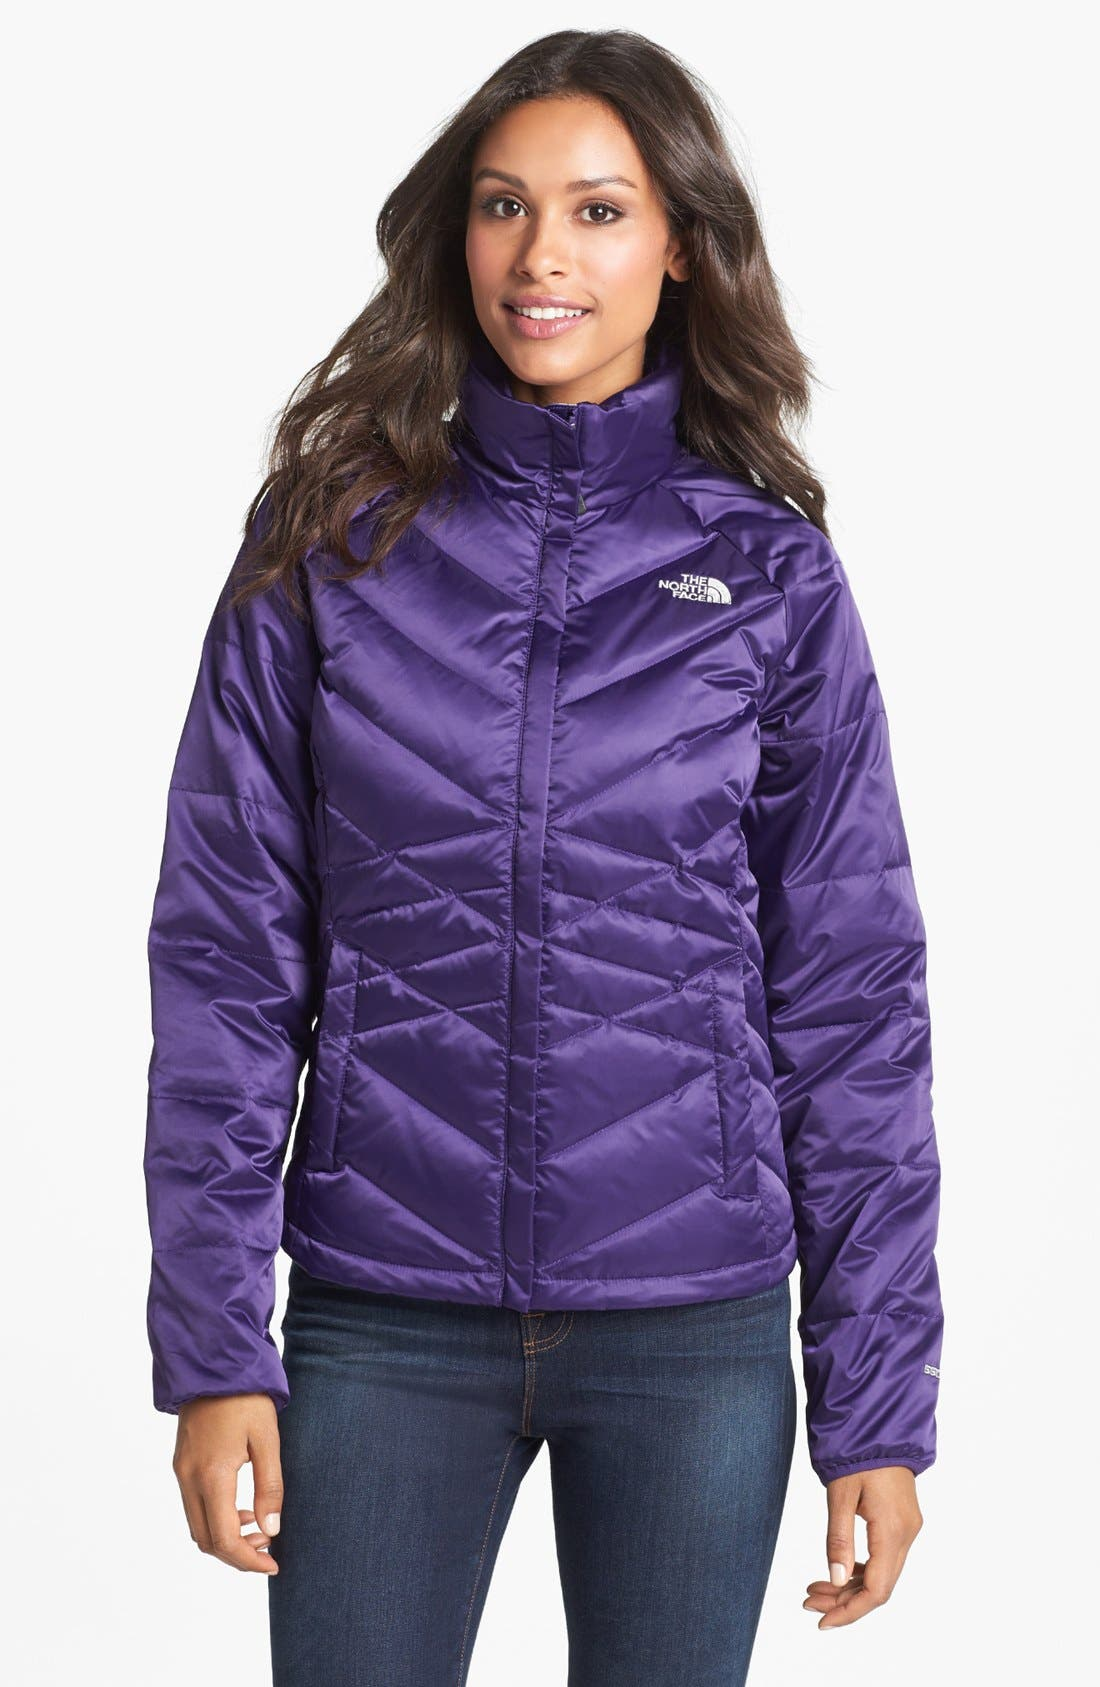 Main Image - The North Face 'Aconcagua' Down Jacket